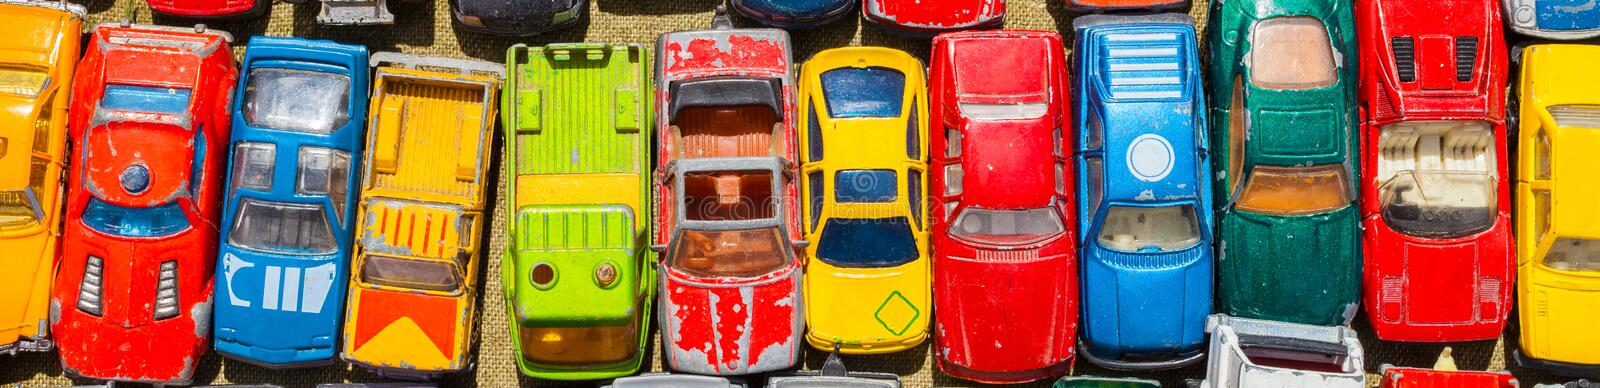 Old Toy Cars Panoramic Web Banner stock photography